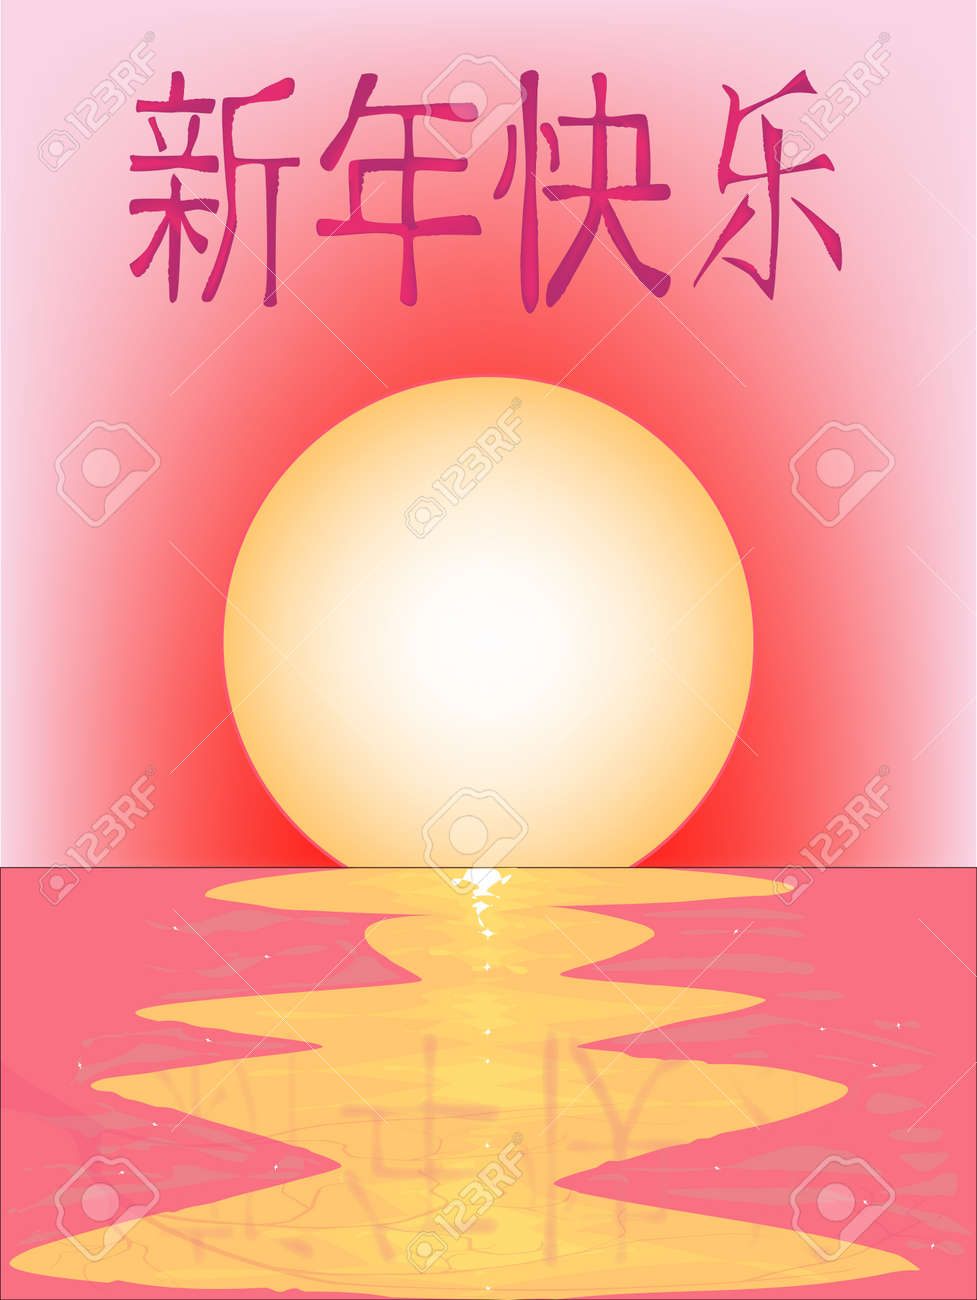 Chinese Happy New Year Stock Vector - 15357460